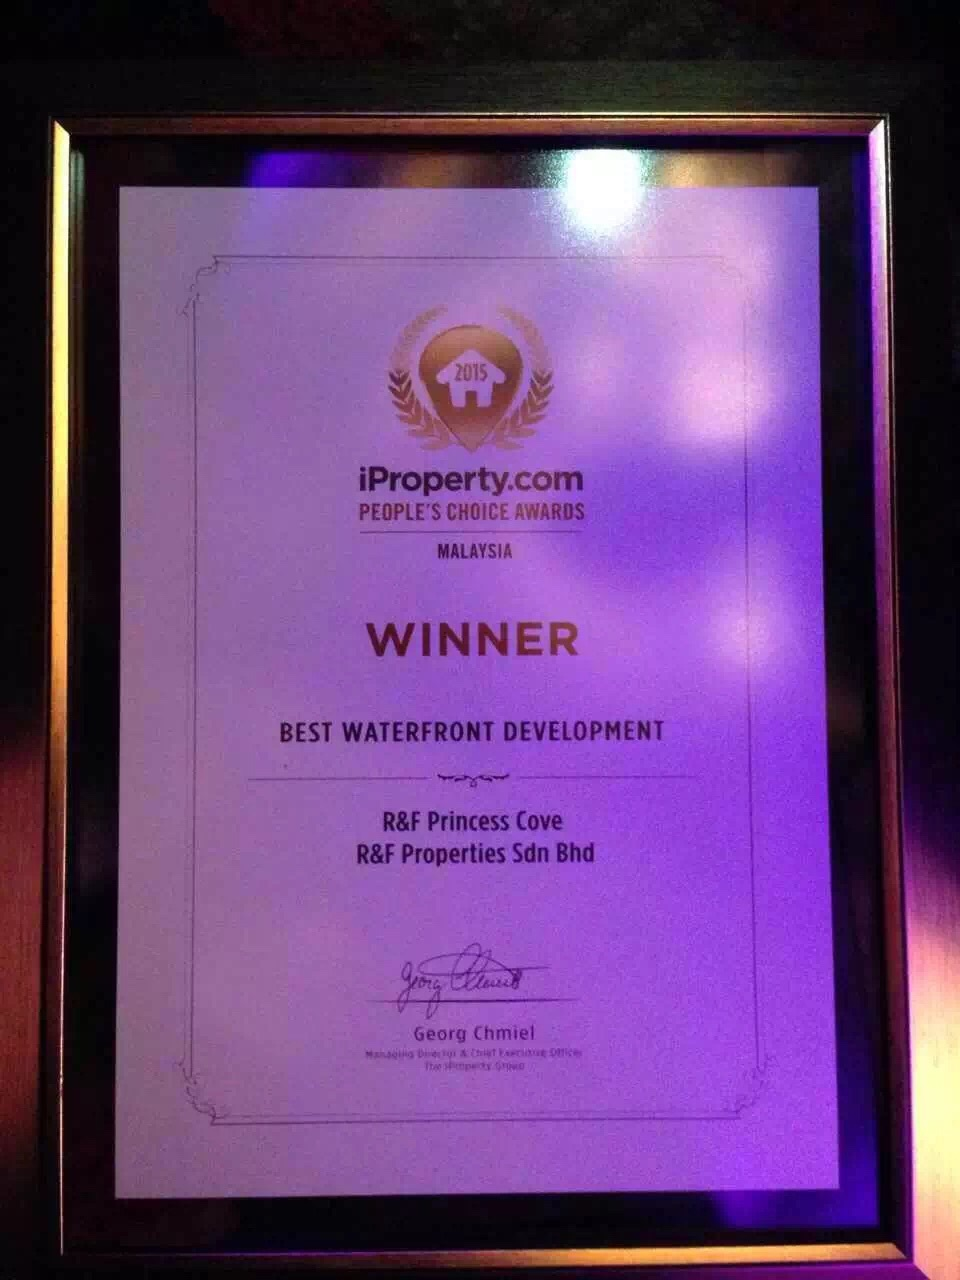 iproperty award 2015 plaque